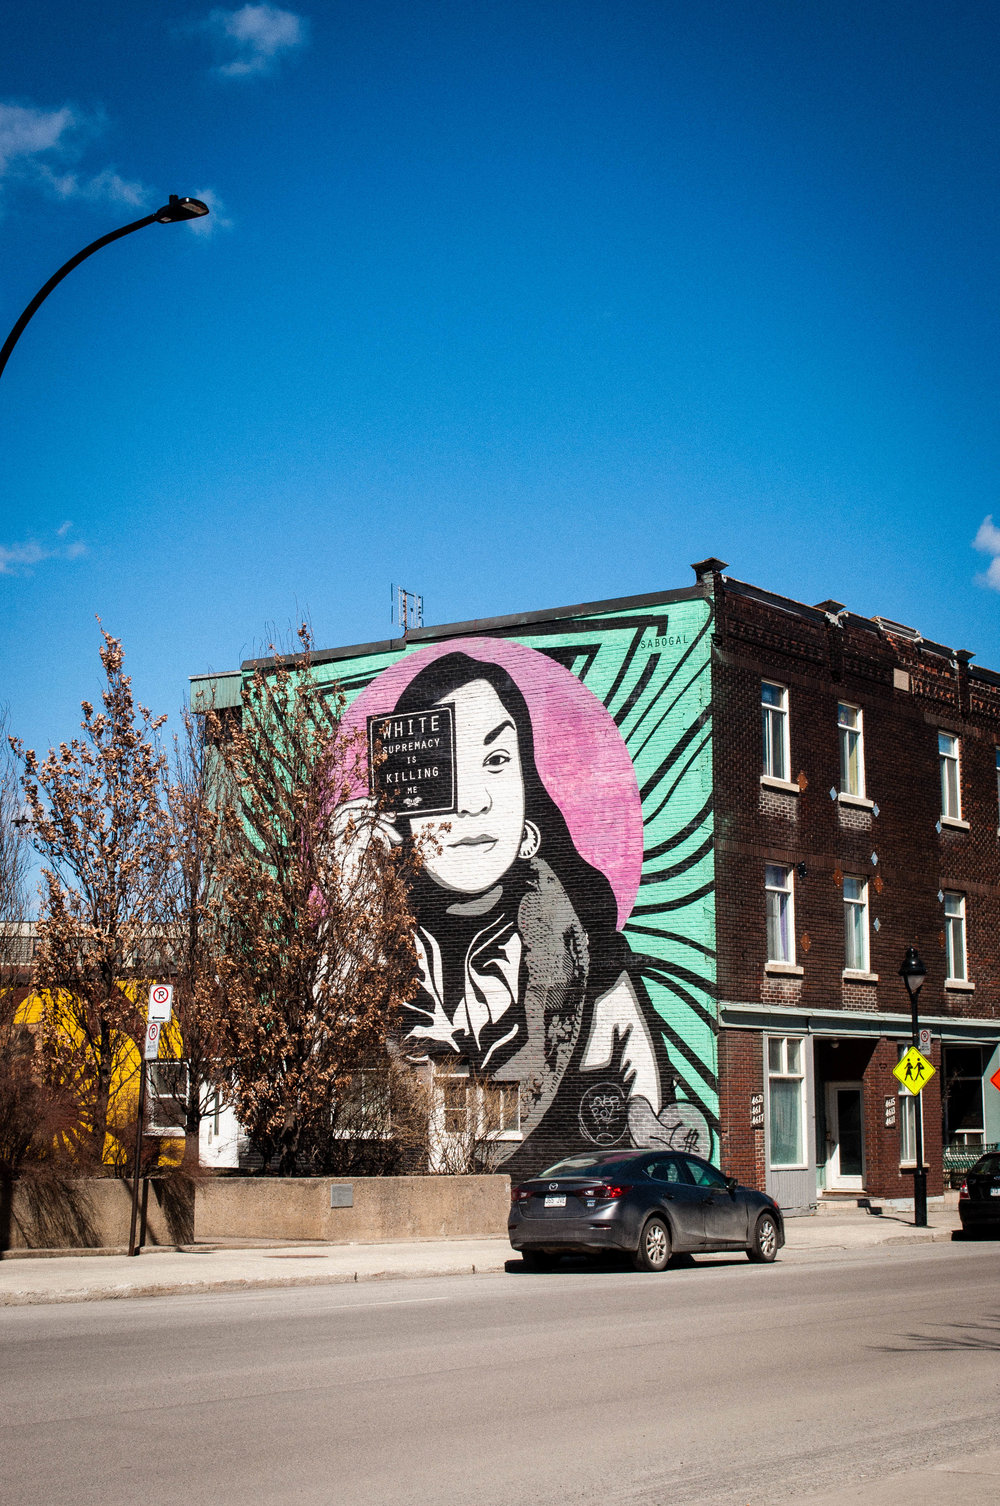 Graffiti in Saint-Henri by a Native American Artist. Graffiti proposed as the best street art in Montreal